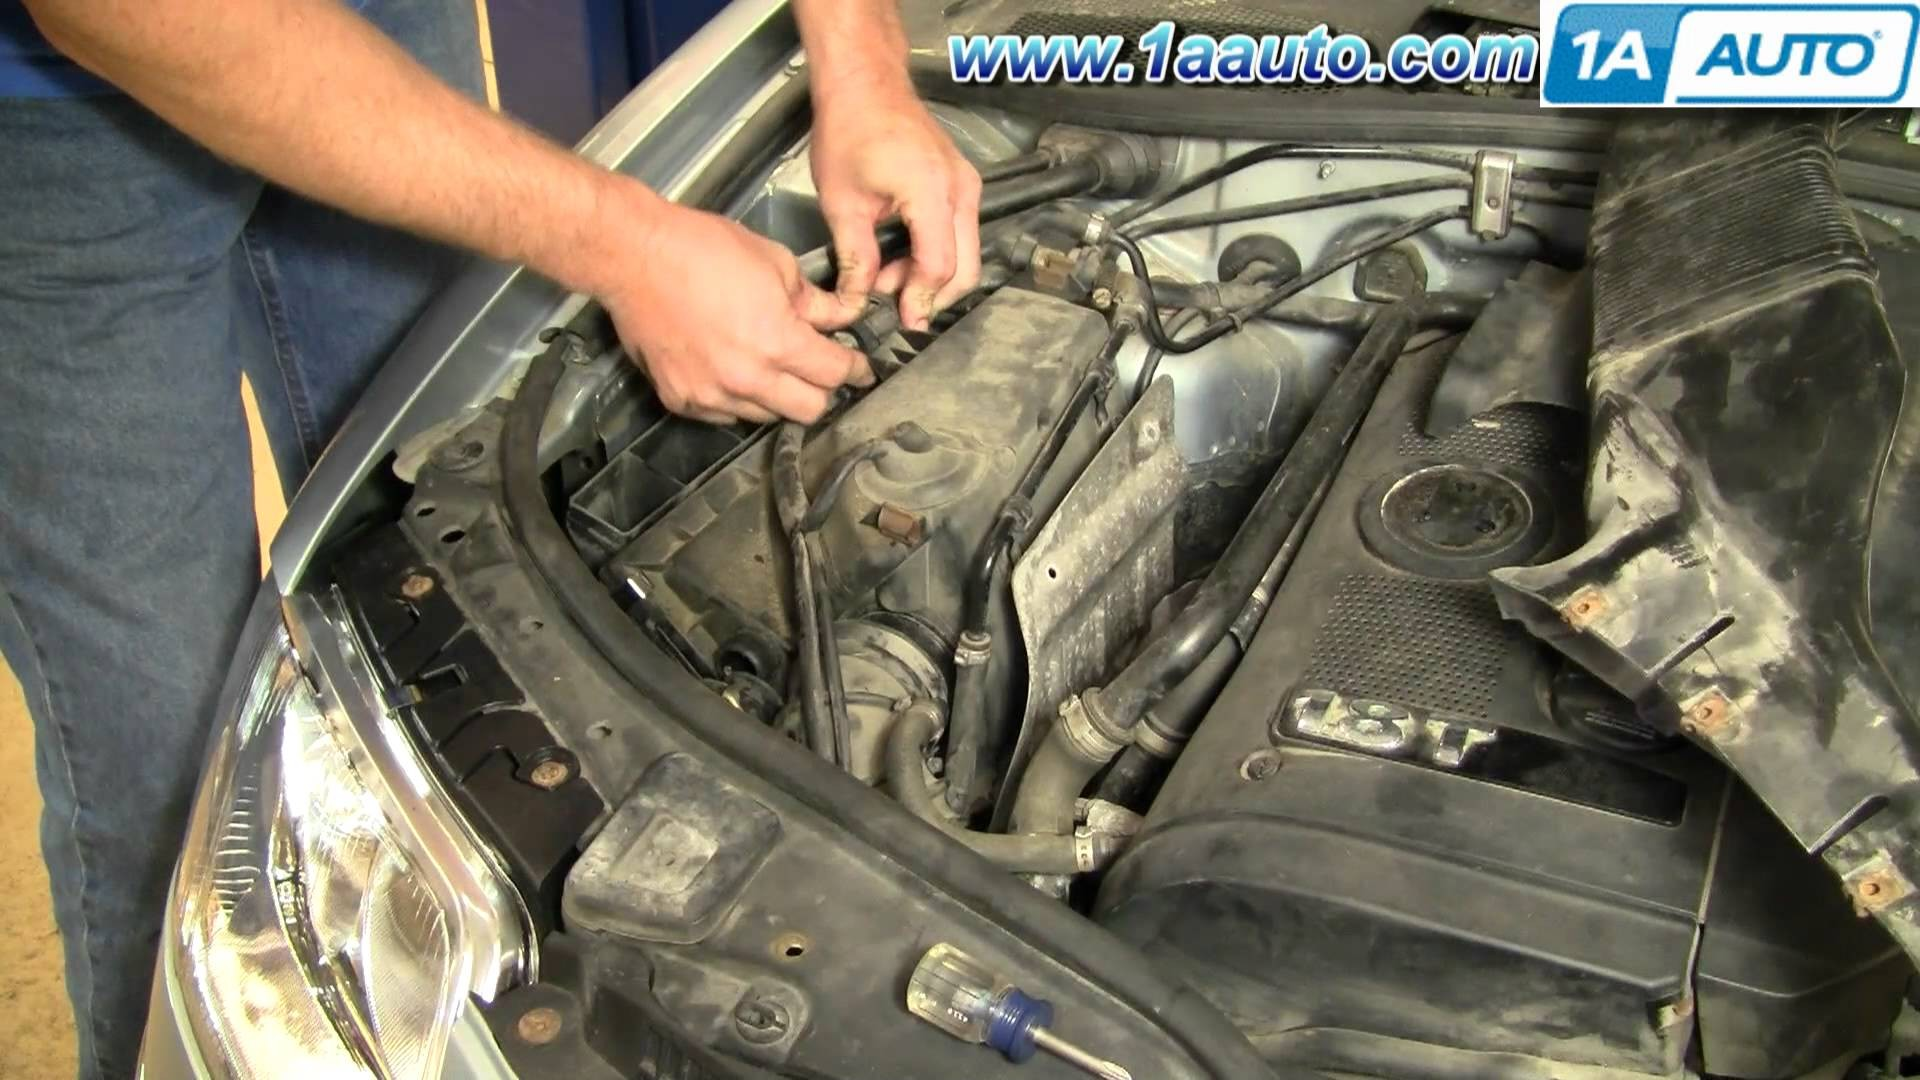 2001 Vw Jetta 1 8 T Engine Diagram How to Install Replace Engine Air Filter  Volkswagen